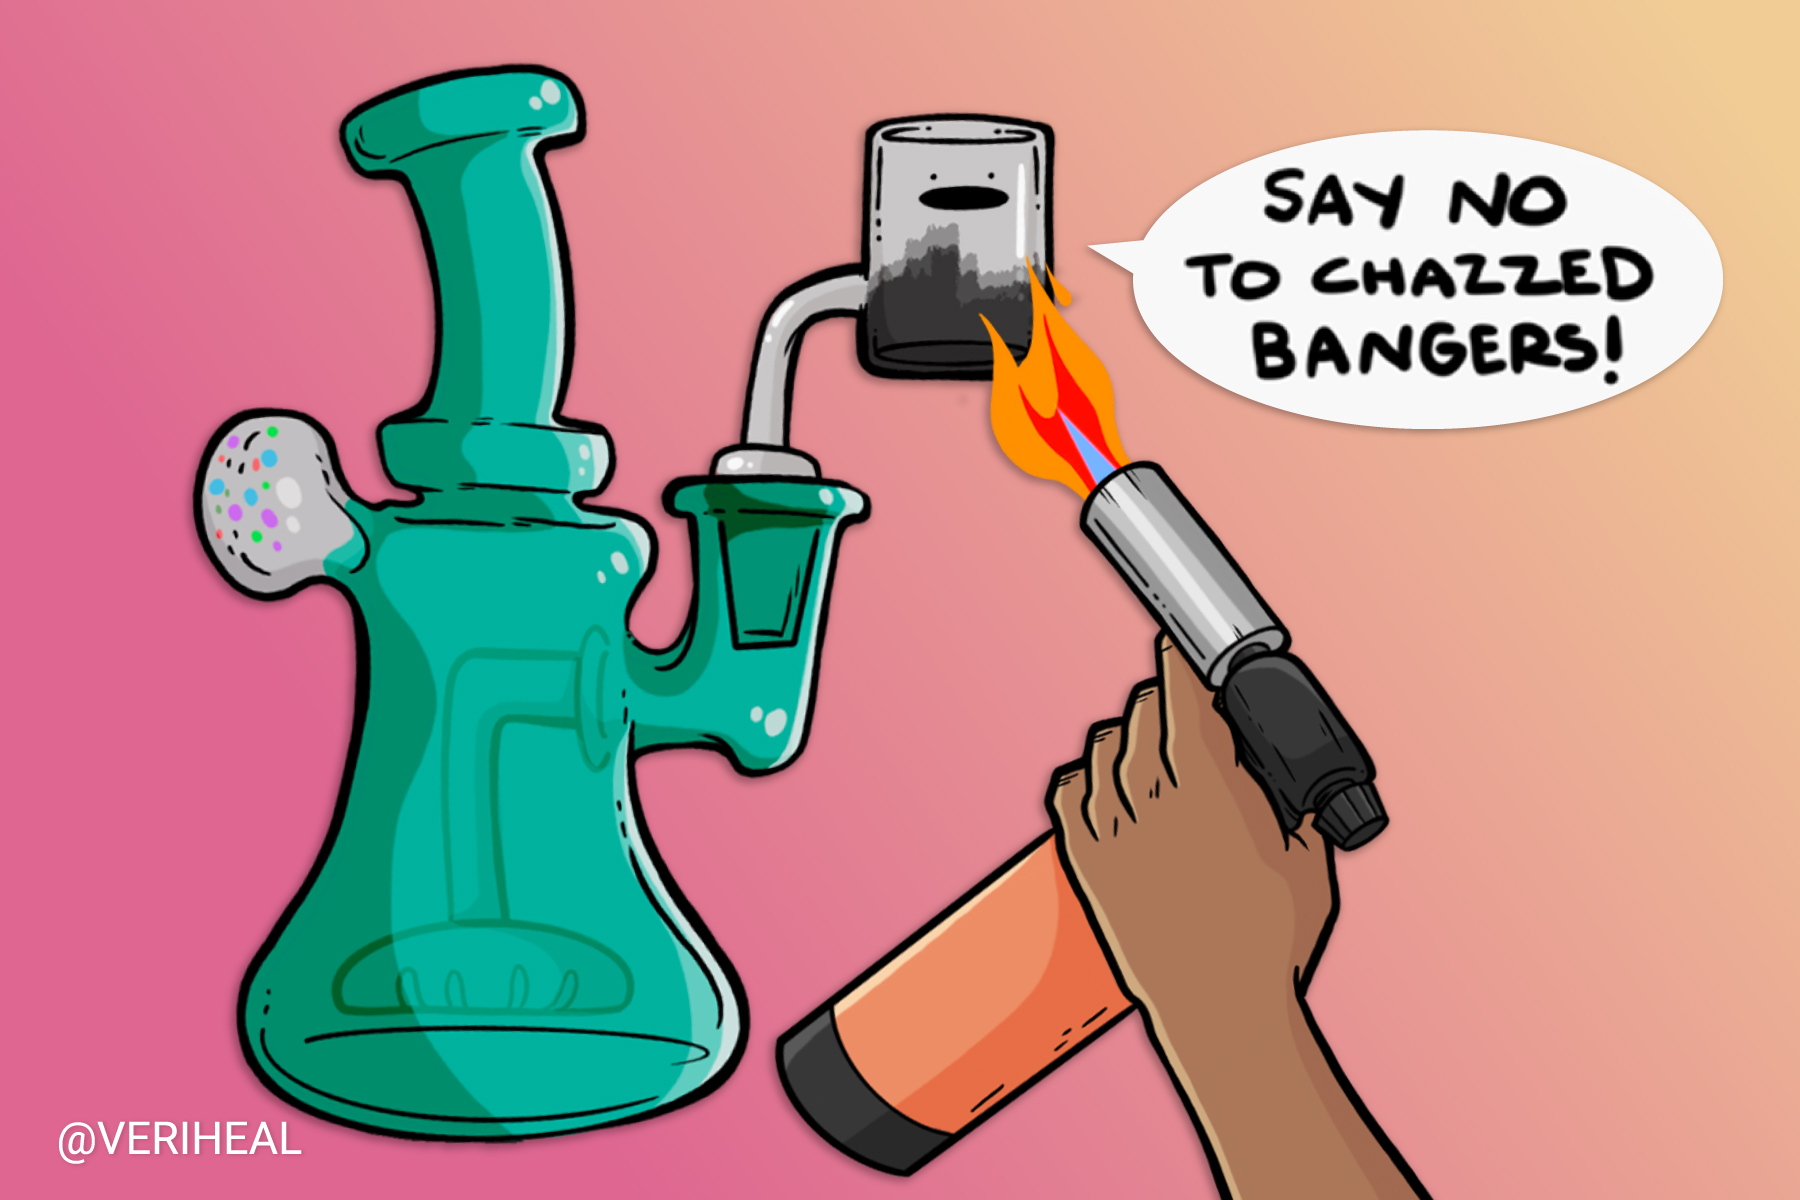 All the Jazz Regarding Chazzed Bangers and How to Avoid Them